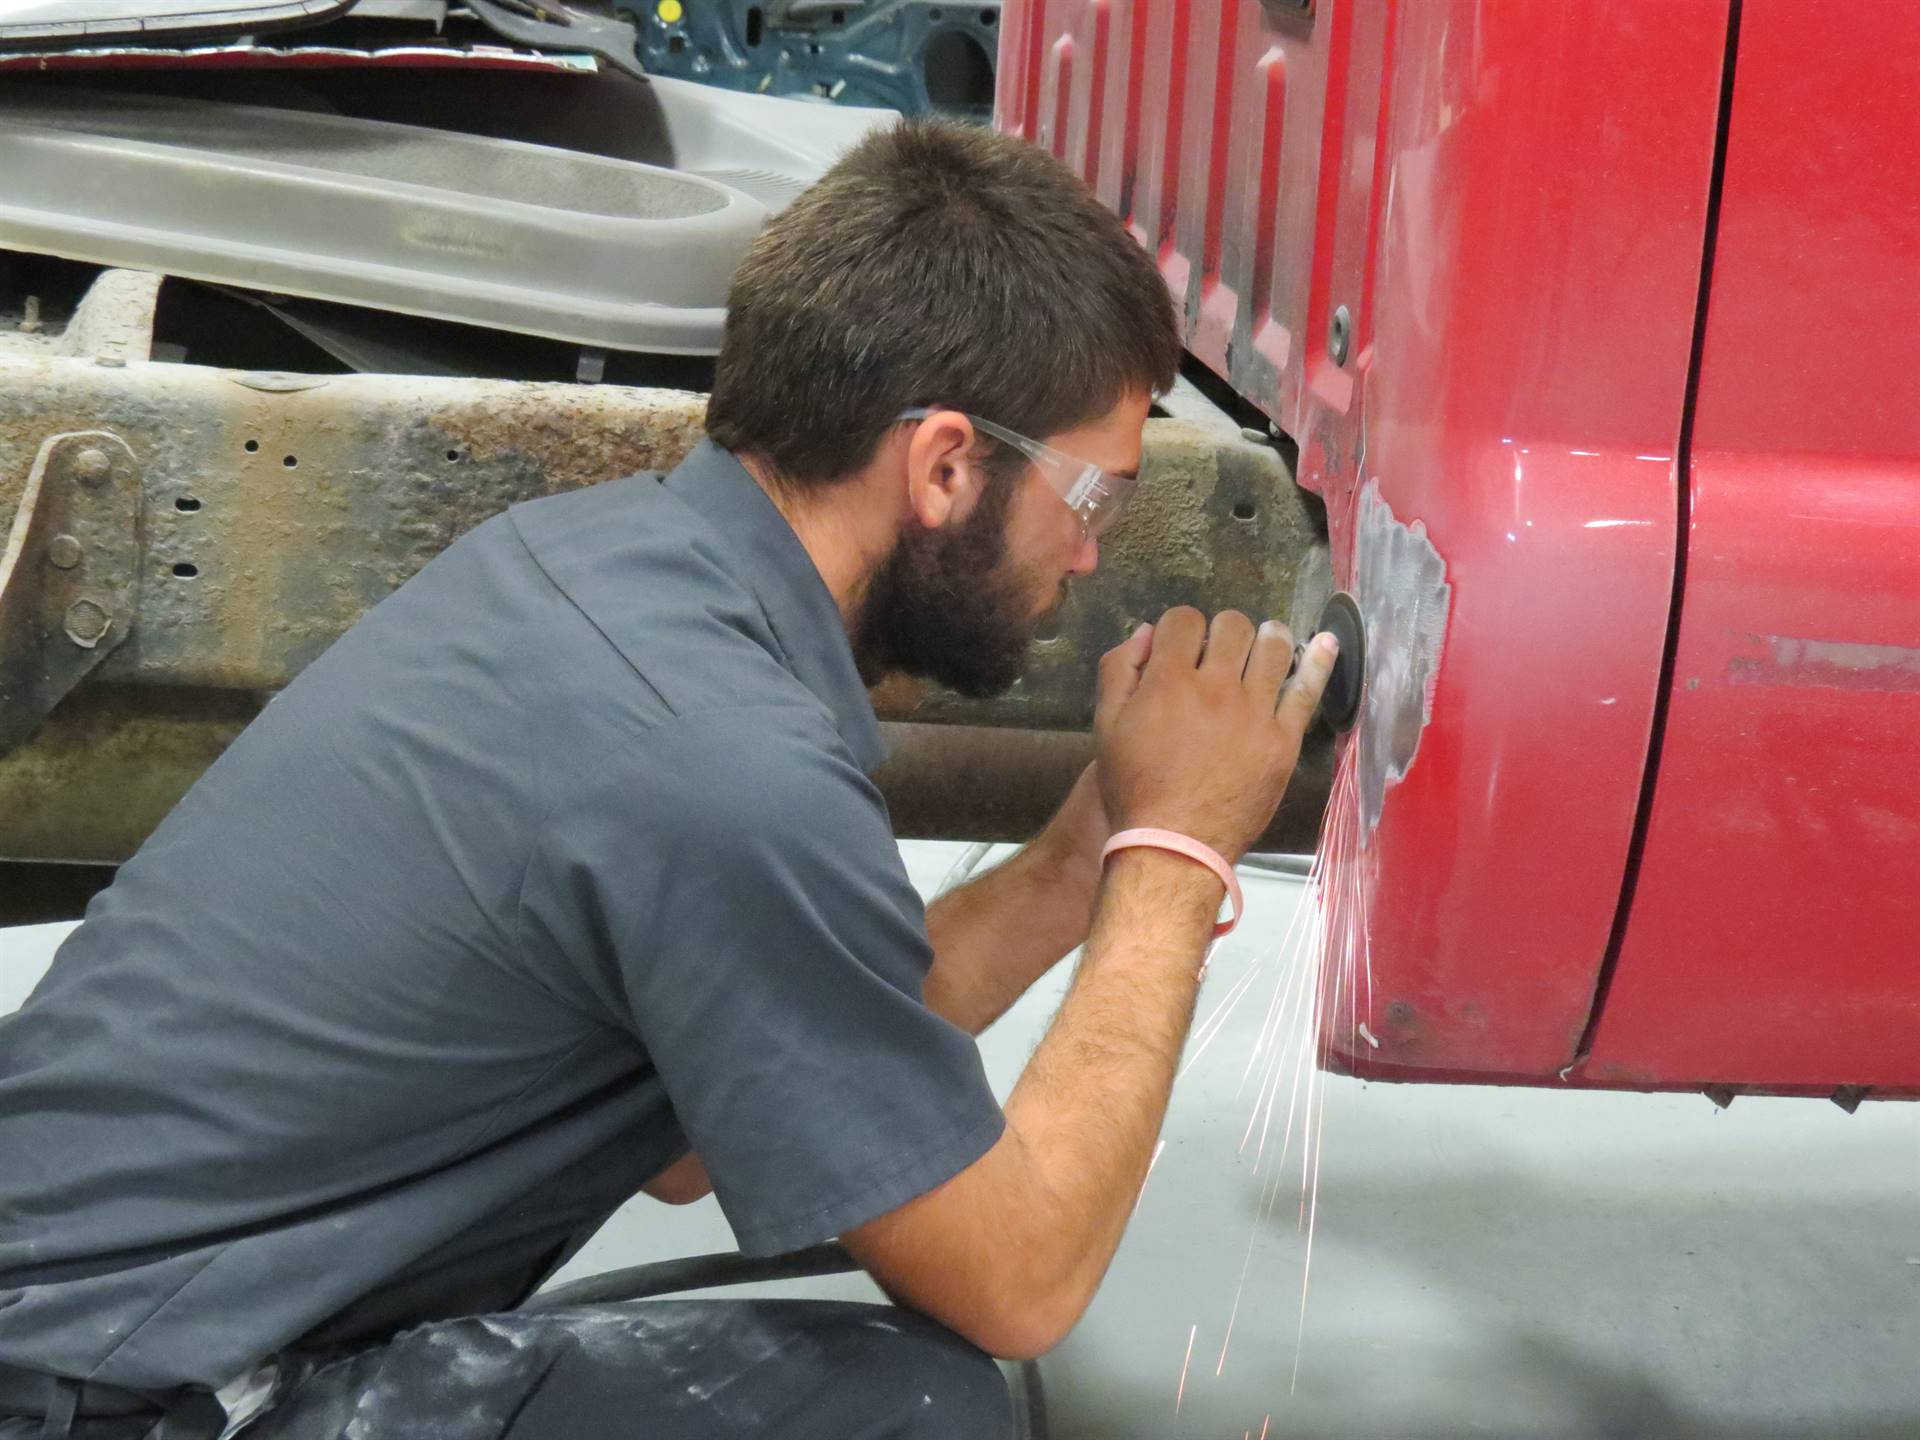 Male Auto Body student grinding down a red pick up truck